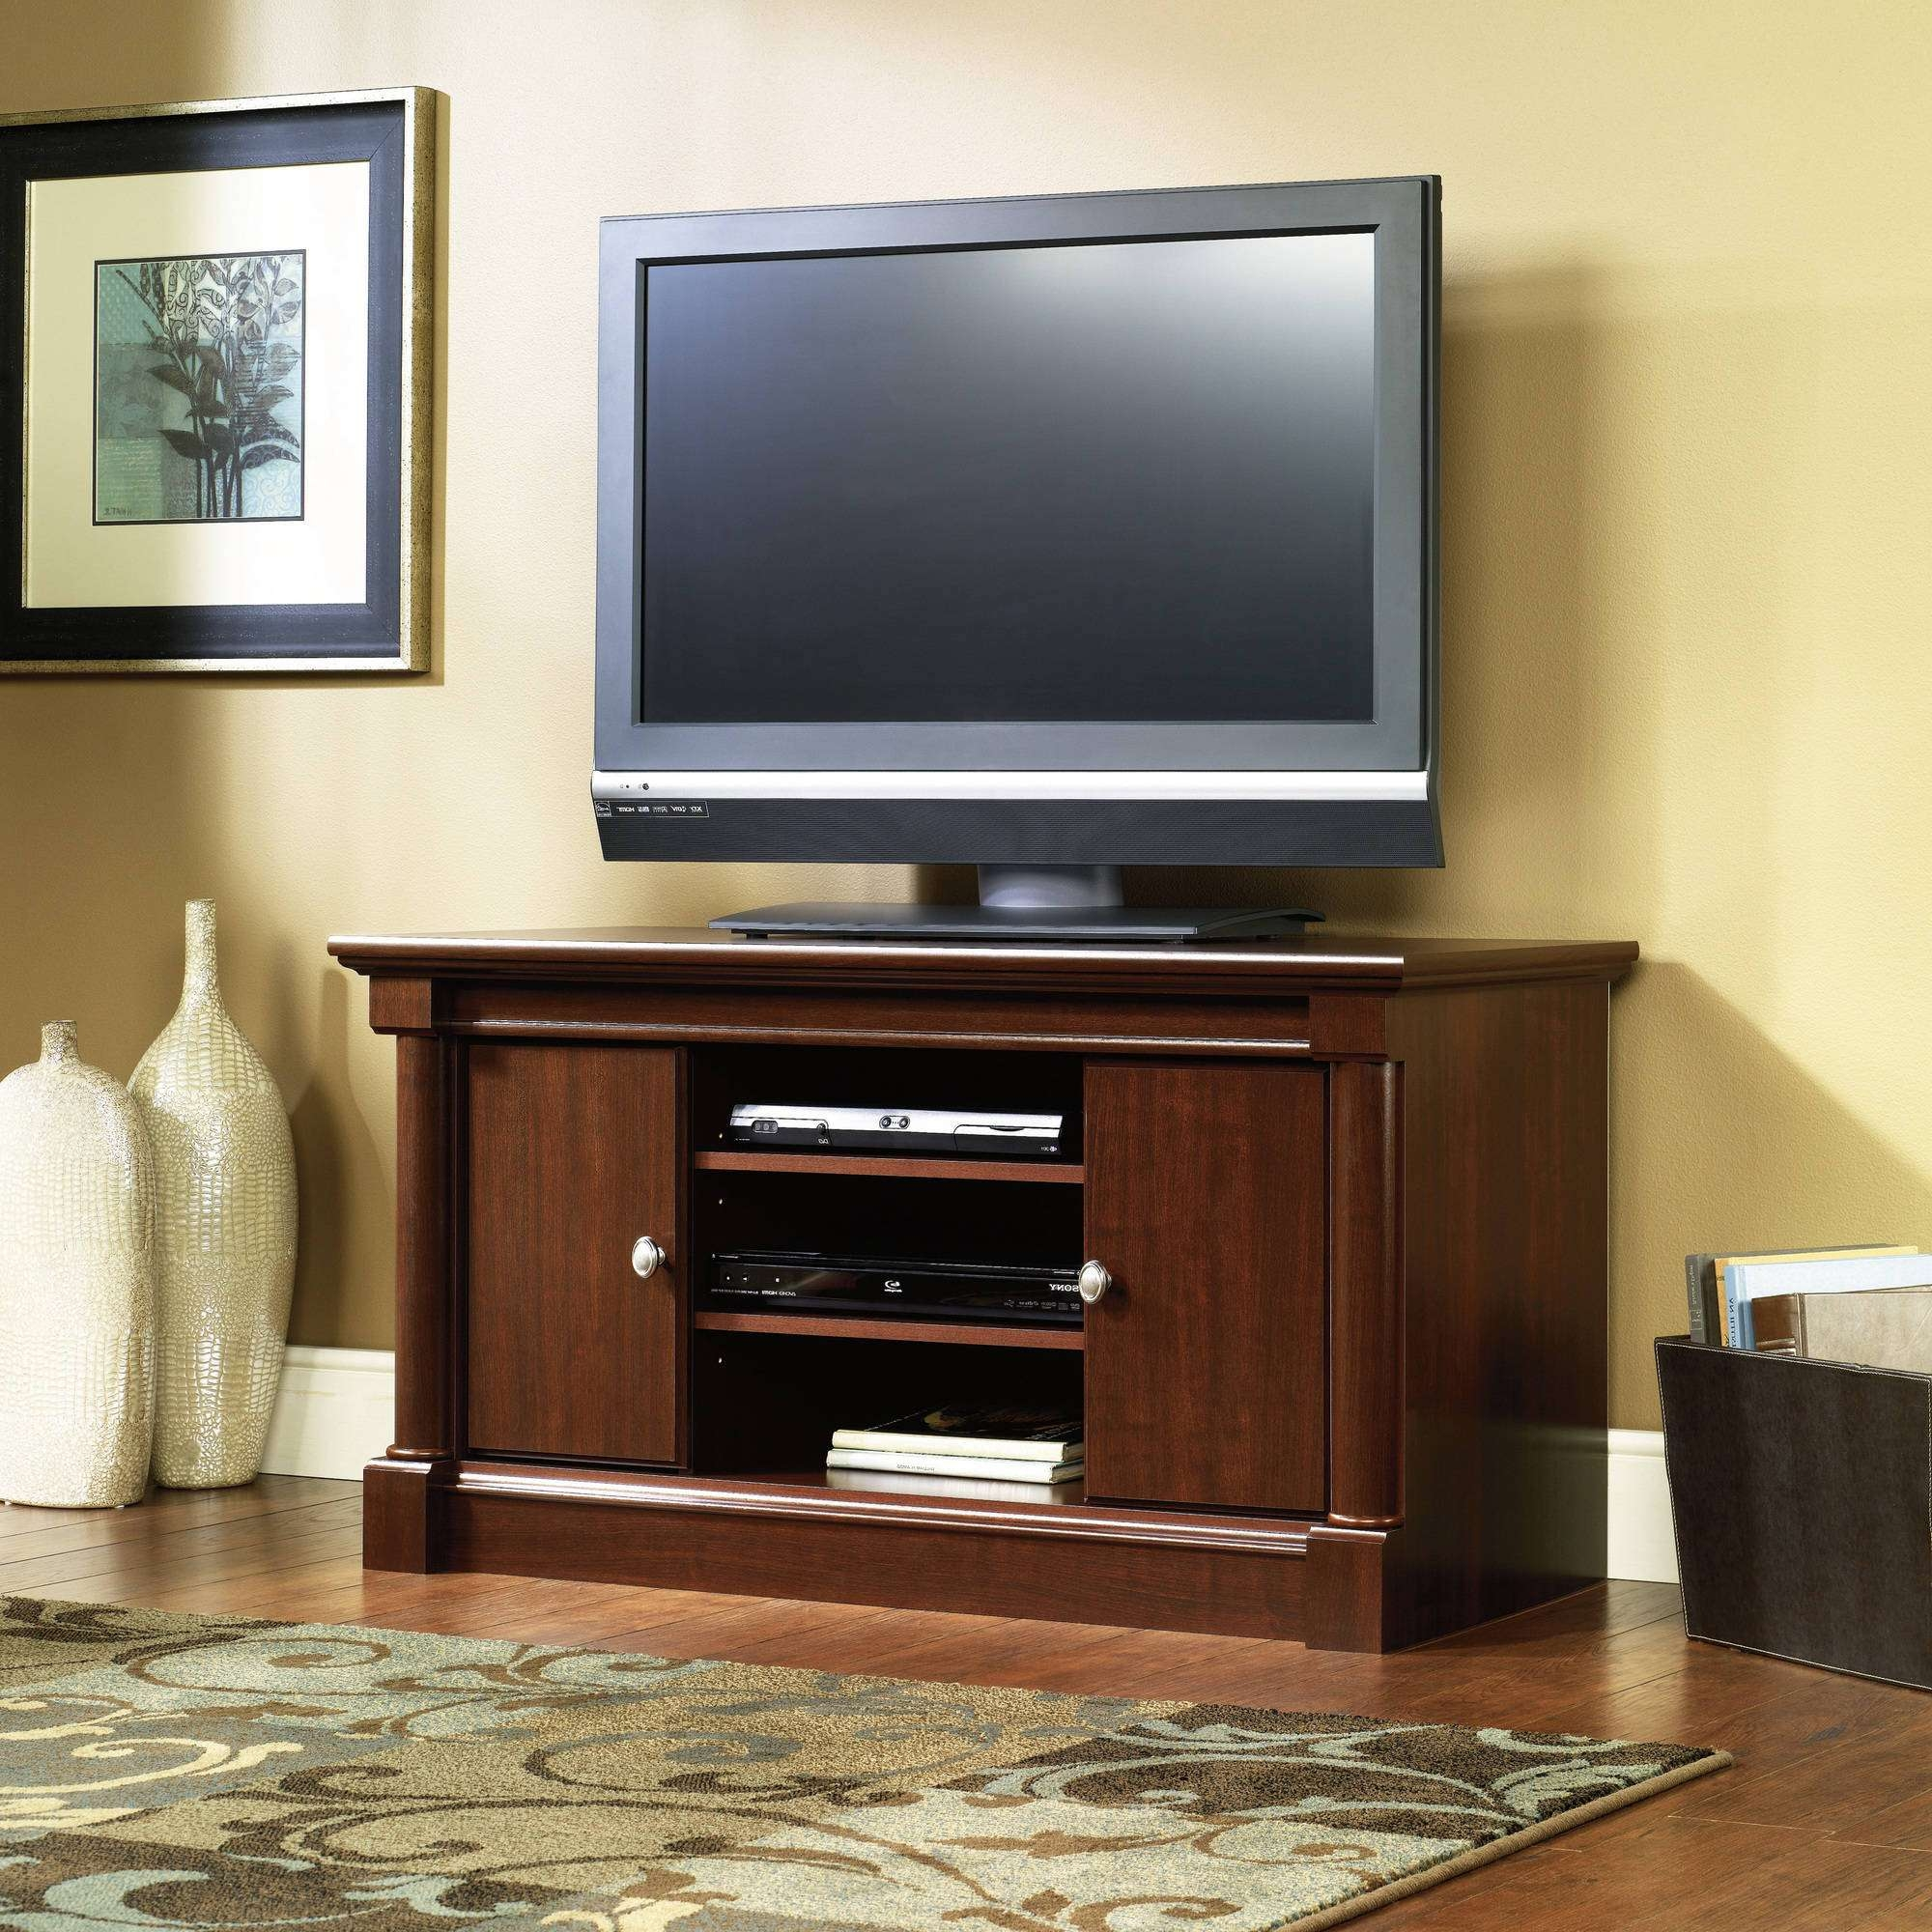 Cherry Tv Stands Intended For Cherry Tv Stands (View 7 of 15)